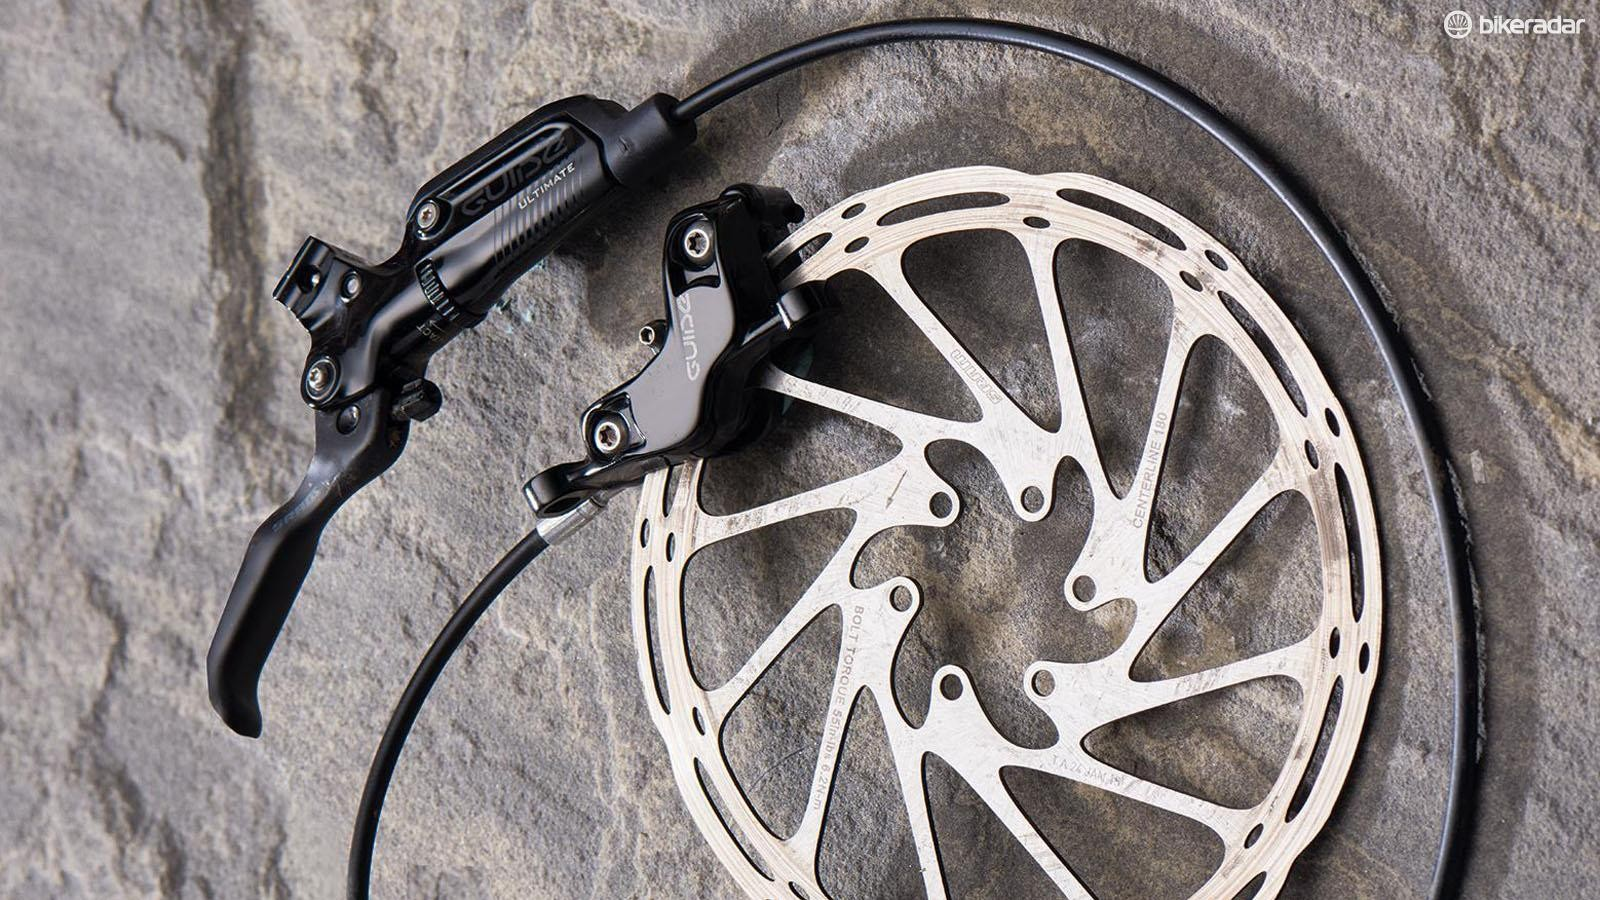 SRAM's Guide Ultimate brakes largely live up to their billing